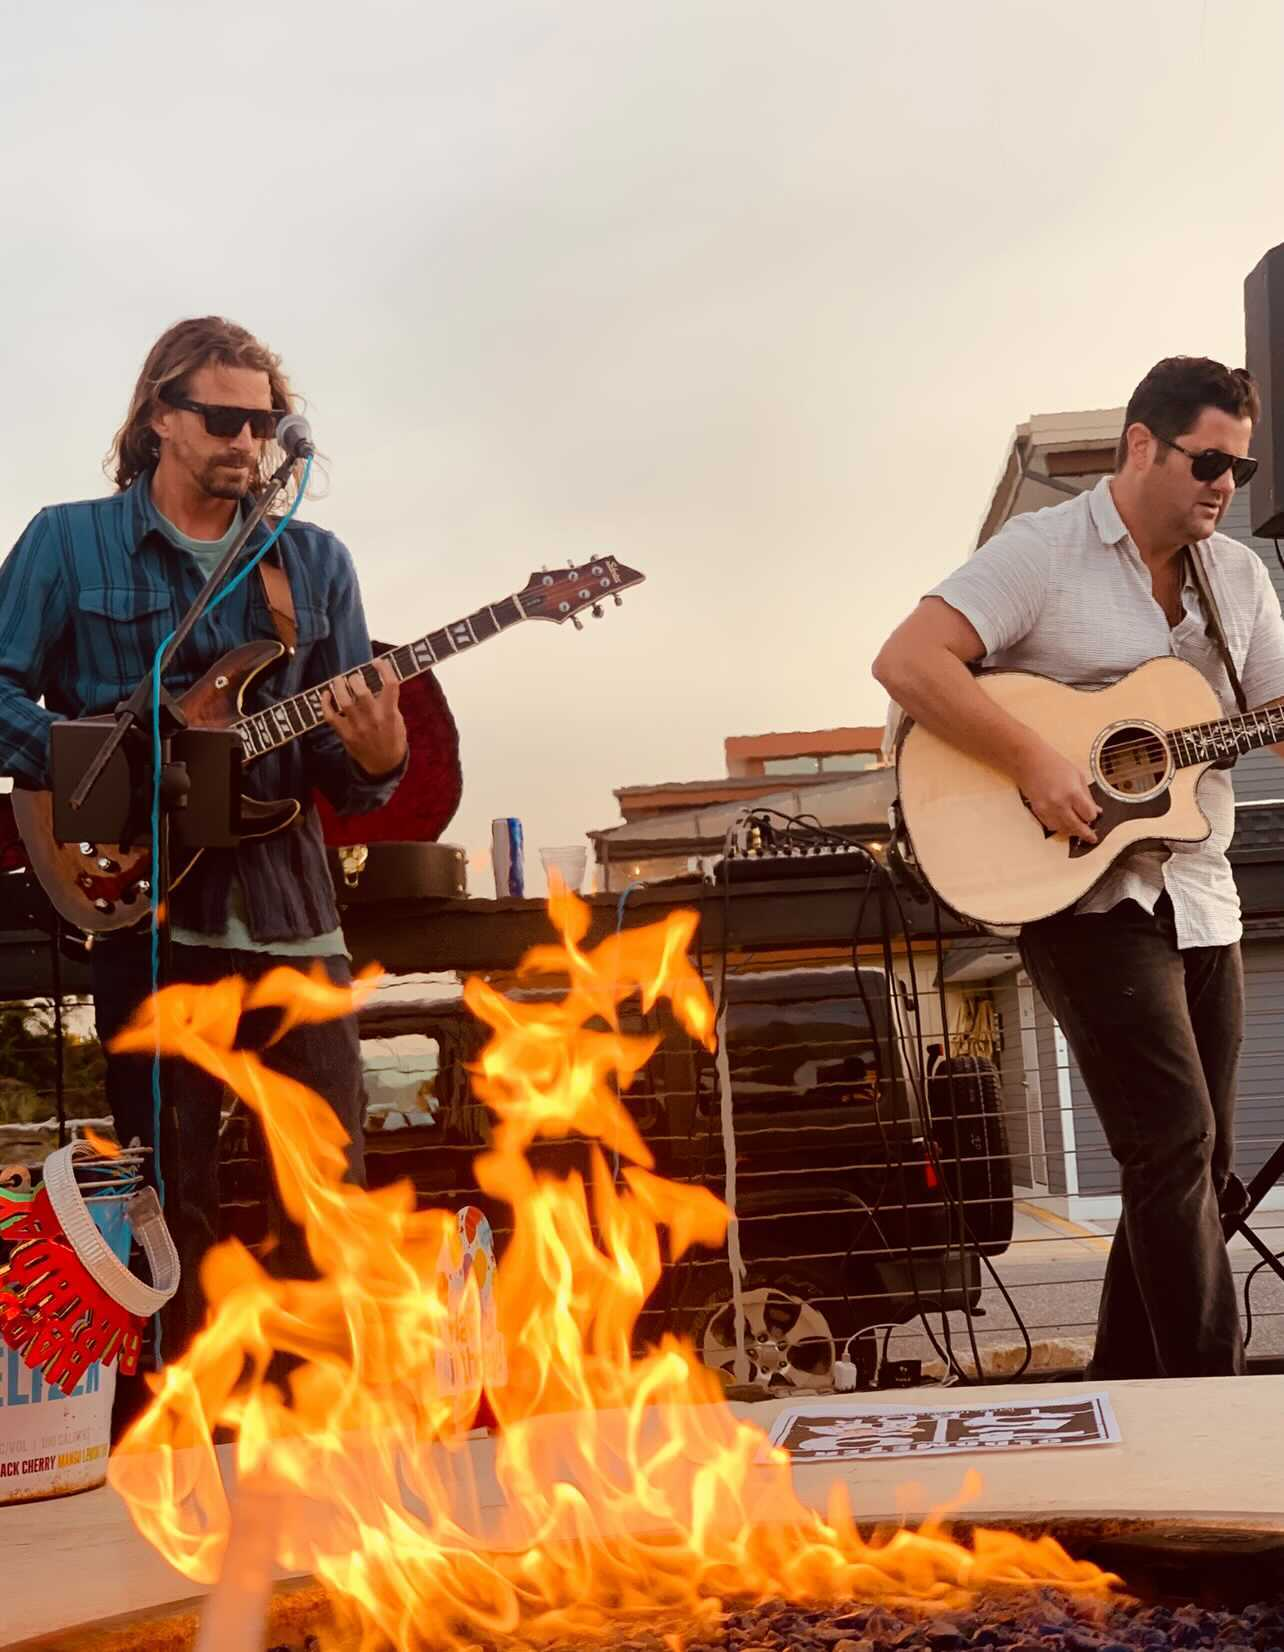 Black Dandelion Band playing at ICONA Avalon's Sandbar Village with Fire Pit in front of them